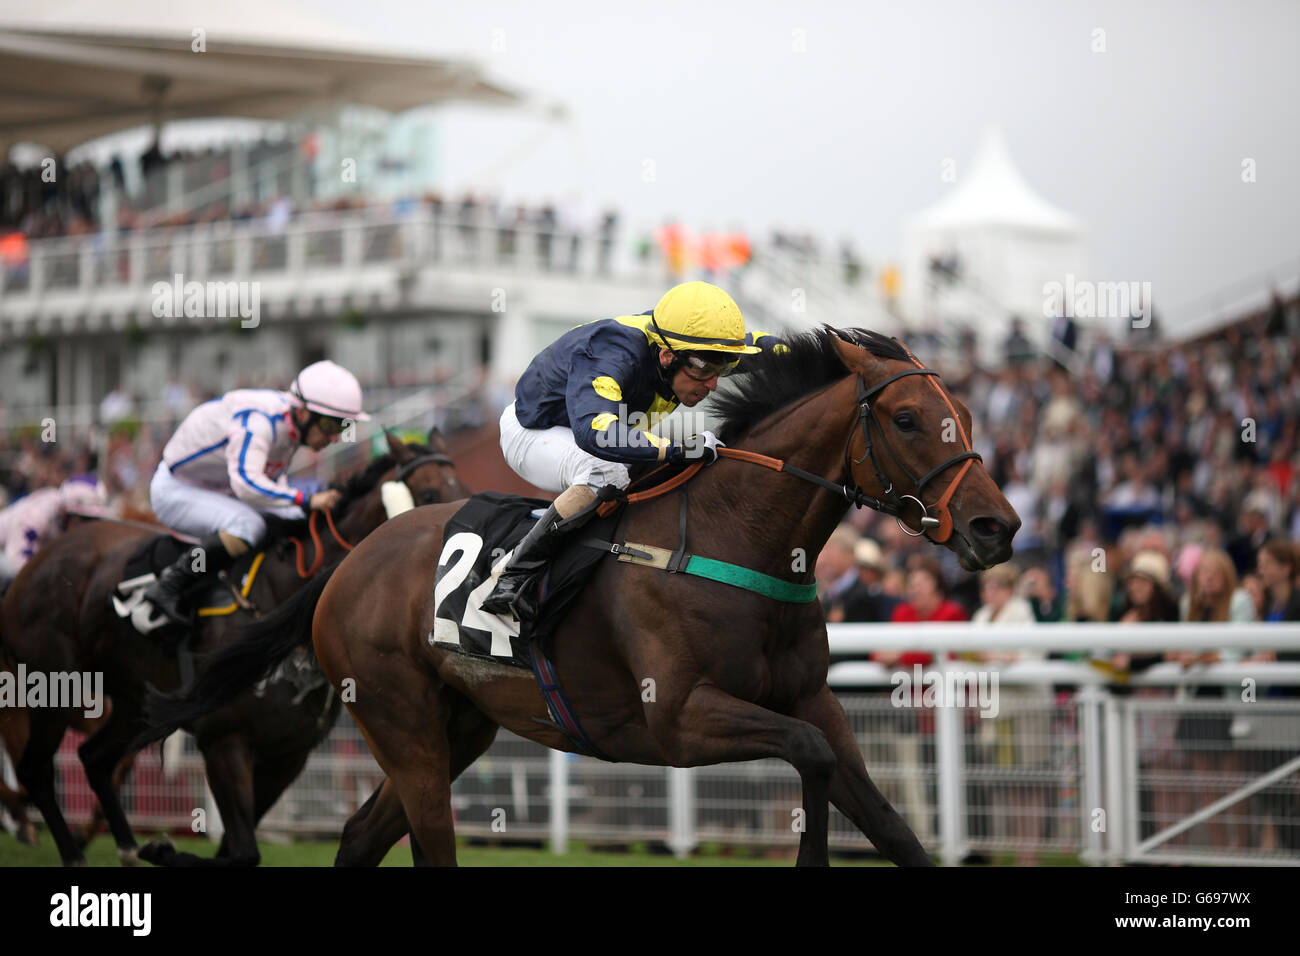 Horse Racing - 2013 Glorious Goodwood Festival - Opening Day - Goodwood Racecourse - Stock Image